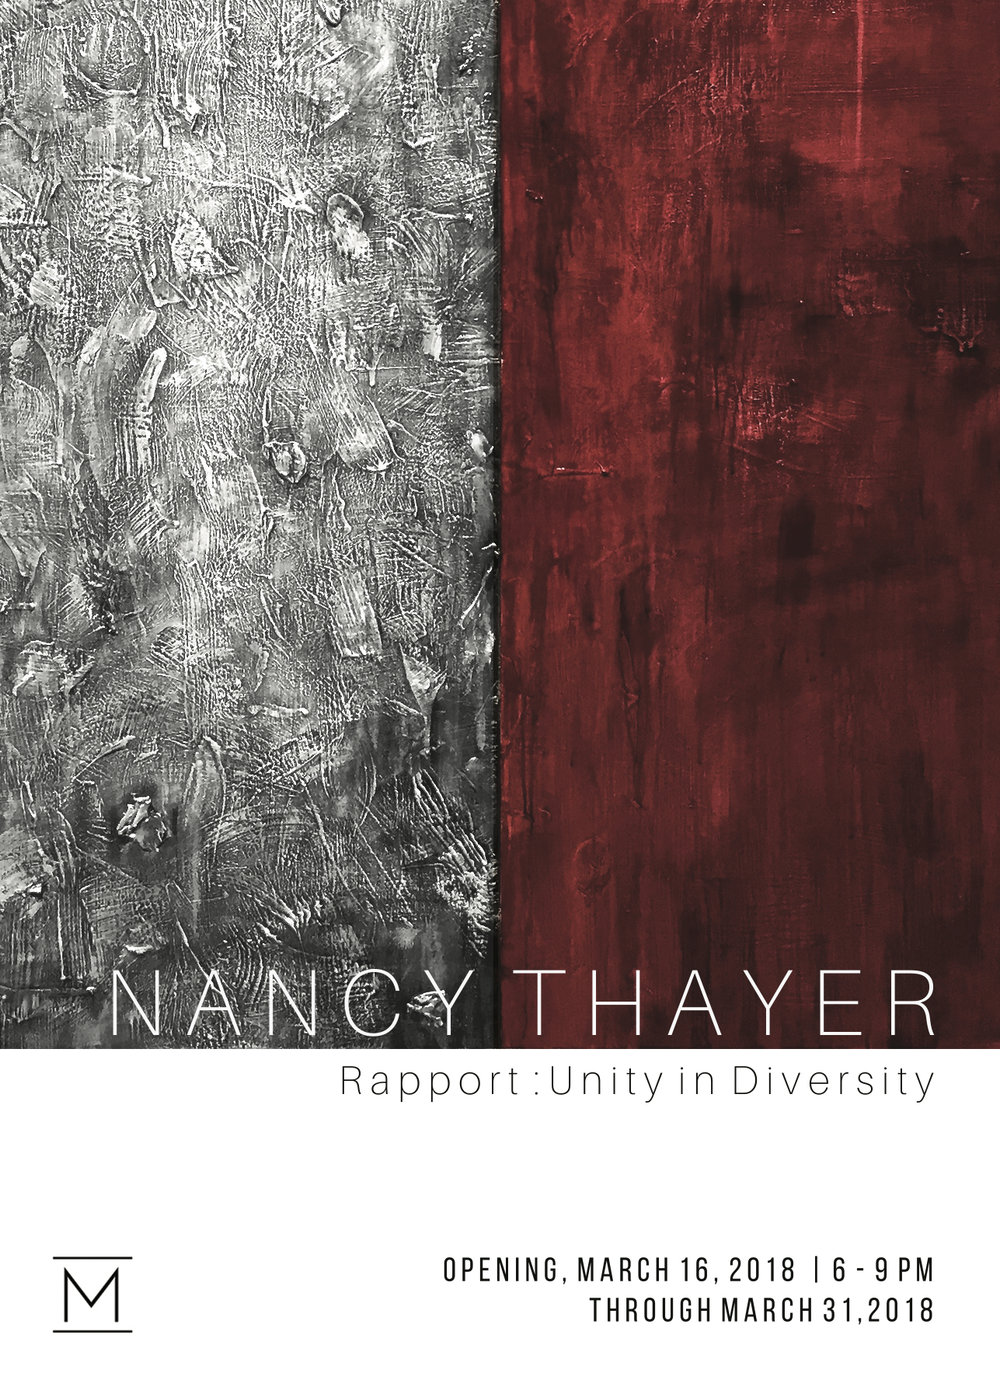 Nancy Thayer Rapport.jpg